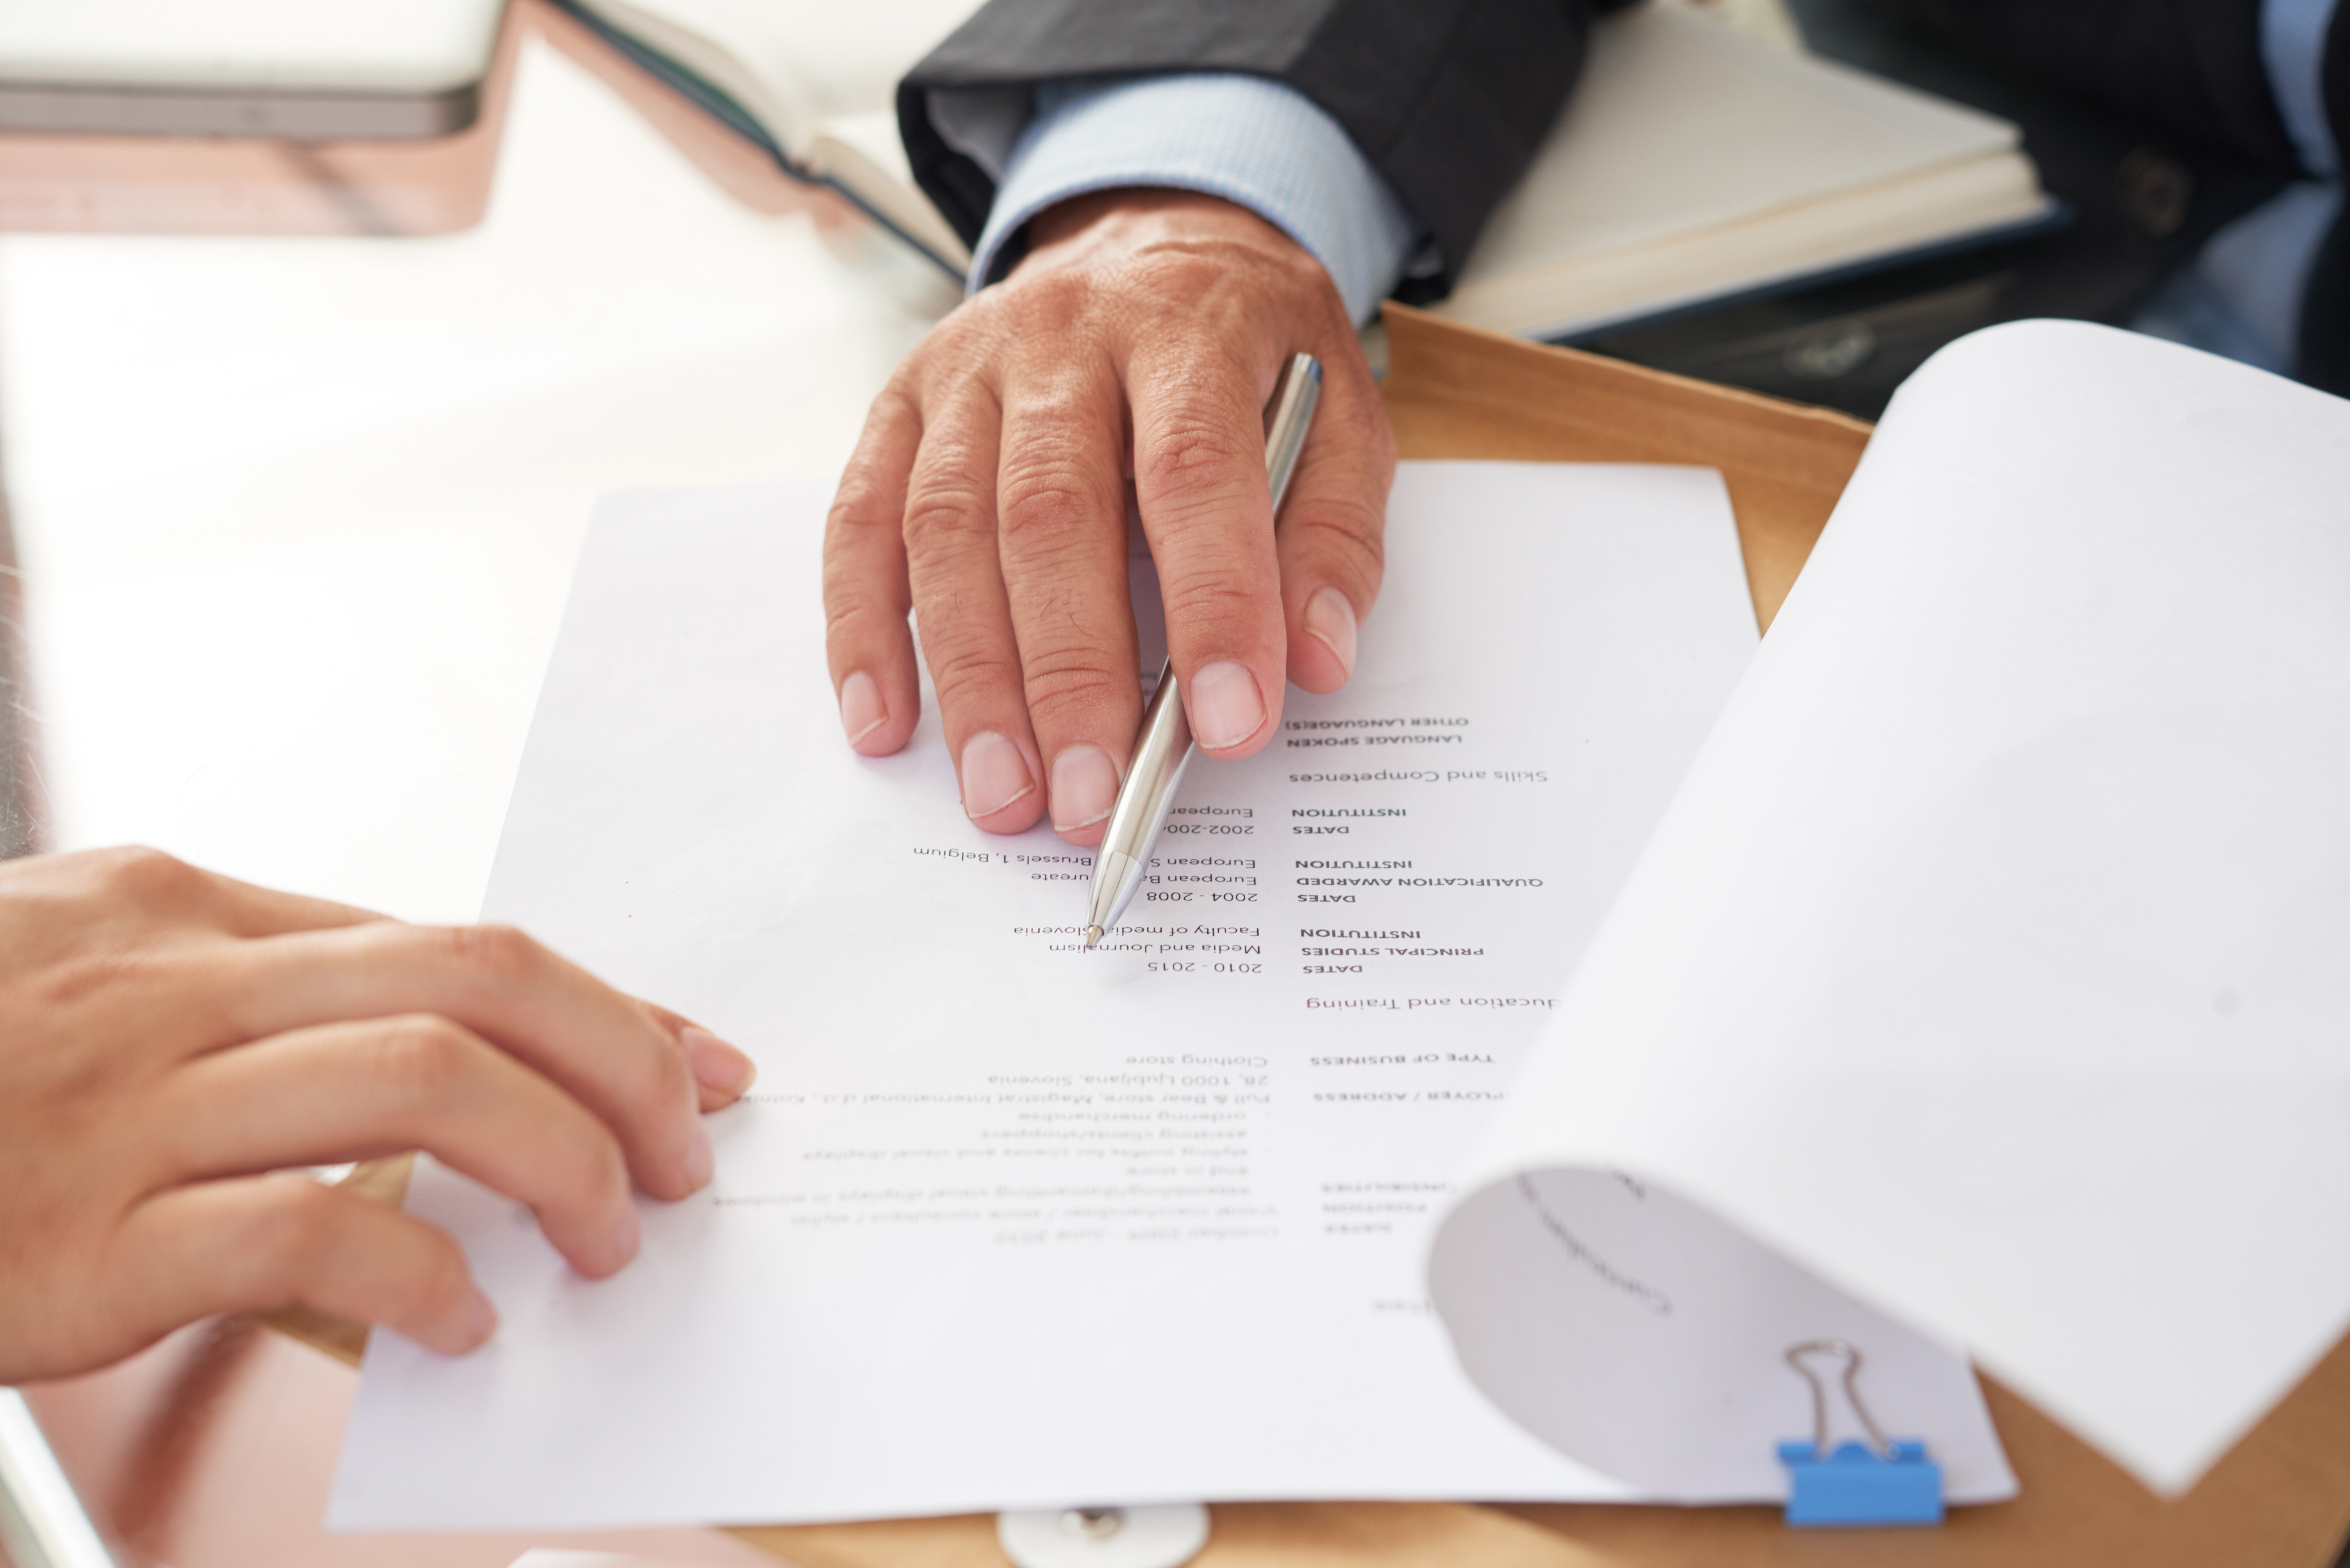 How to Write a Short Resume for Nomination to a Board of